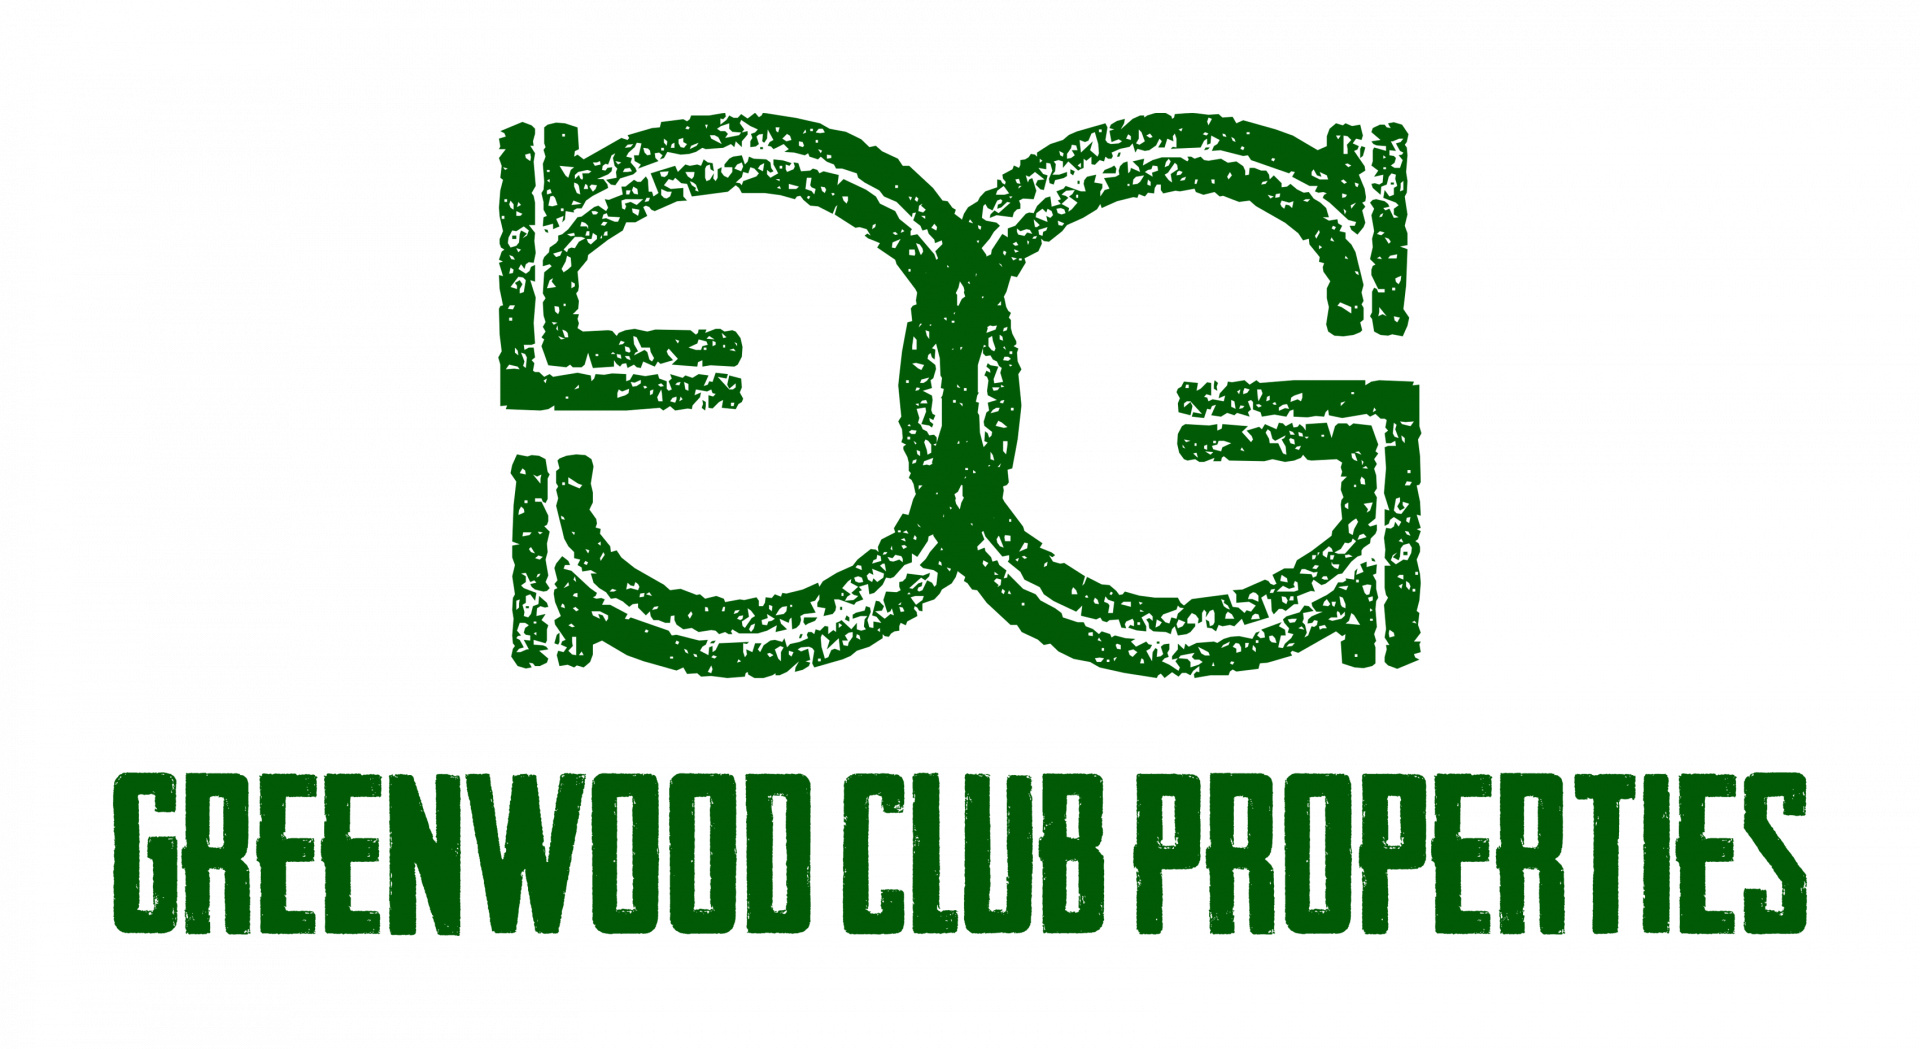 Greenwood Club Properties logo